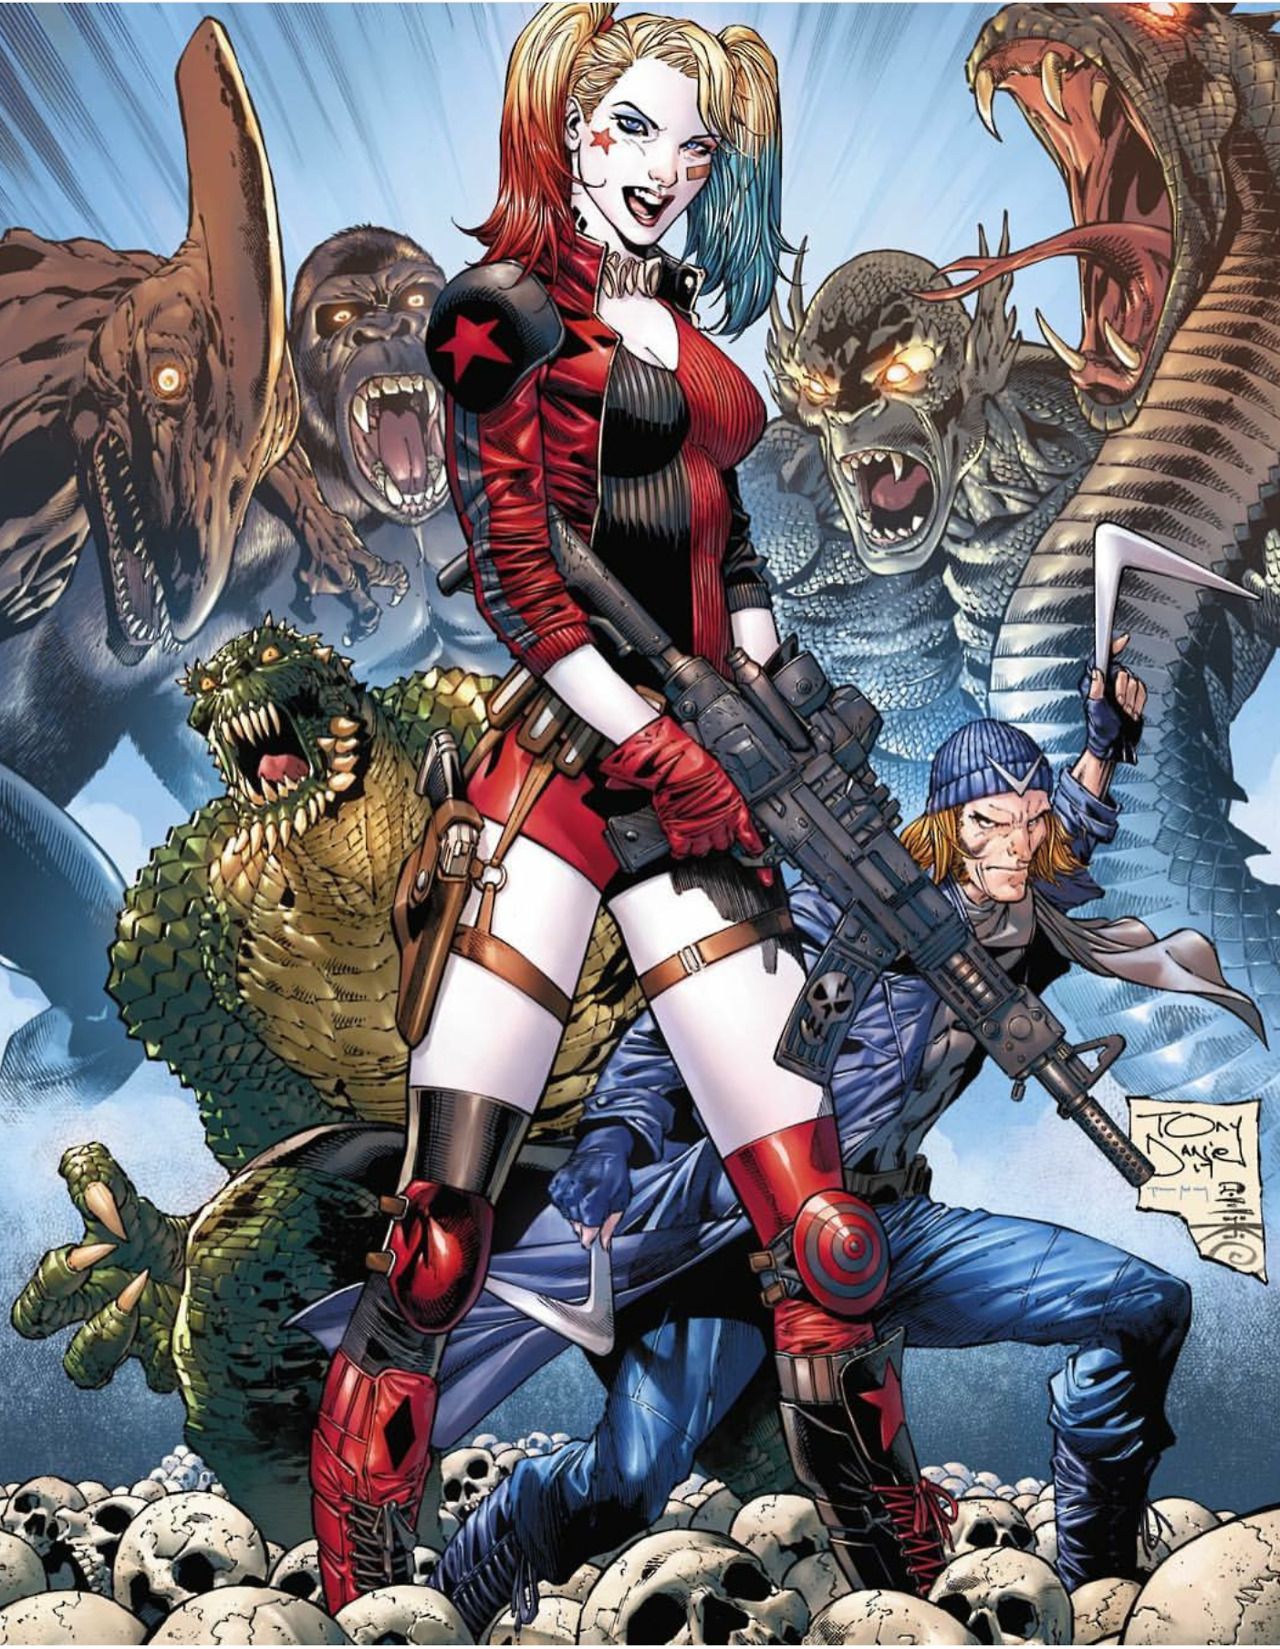 Depiction of Harley Quinn holding a rifle and standing in front of Captain Boomerang, Killer Croc, and a group of large monsters.